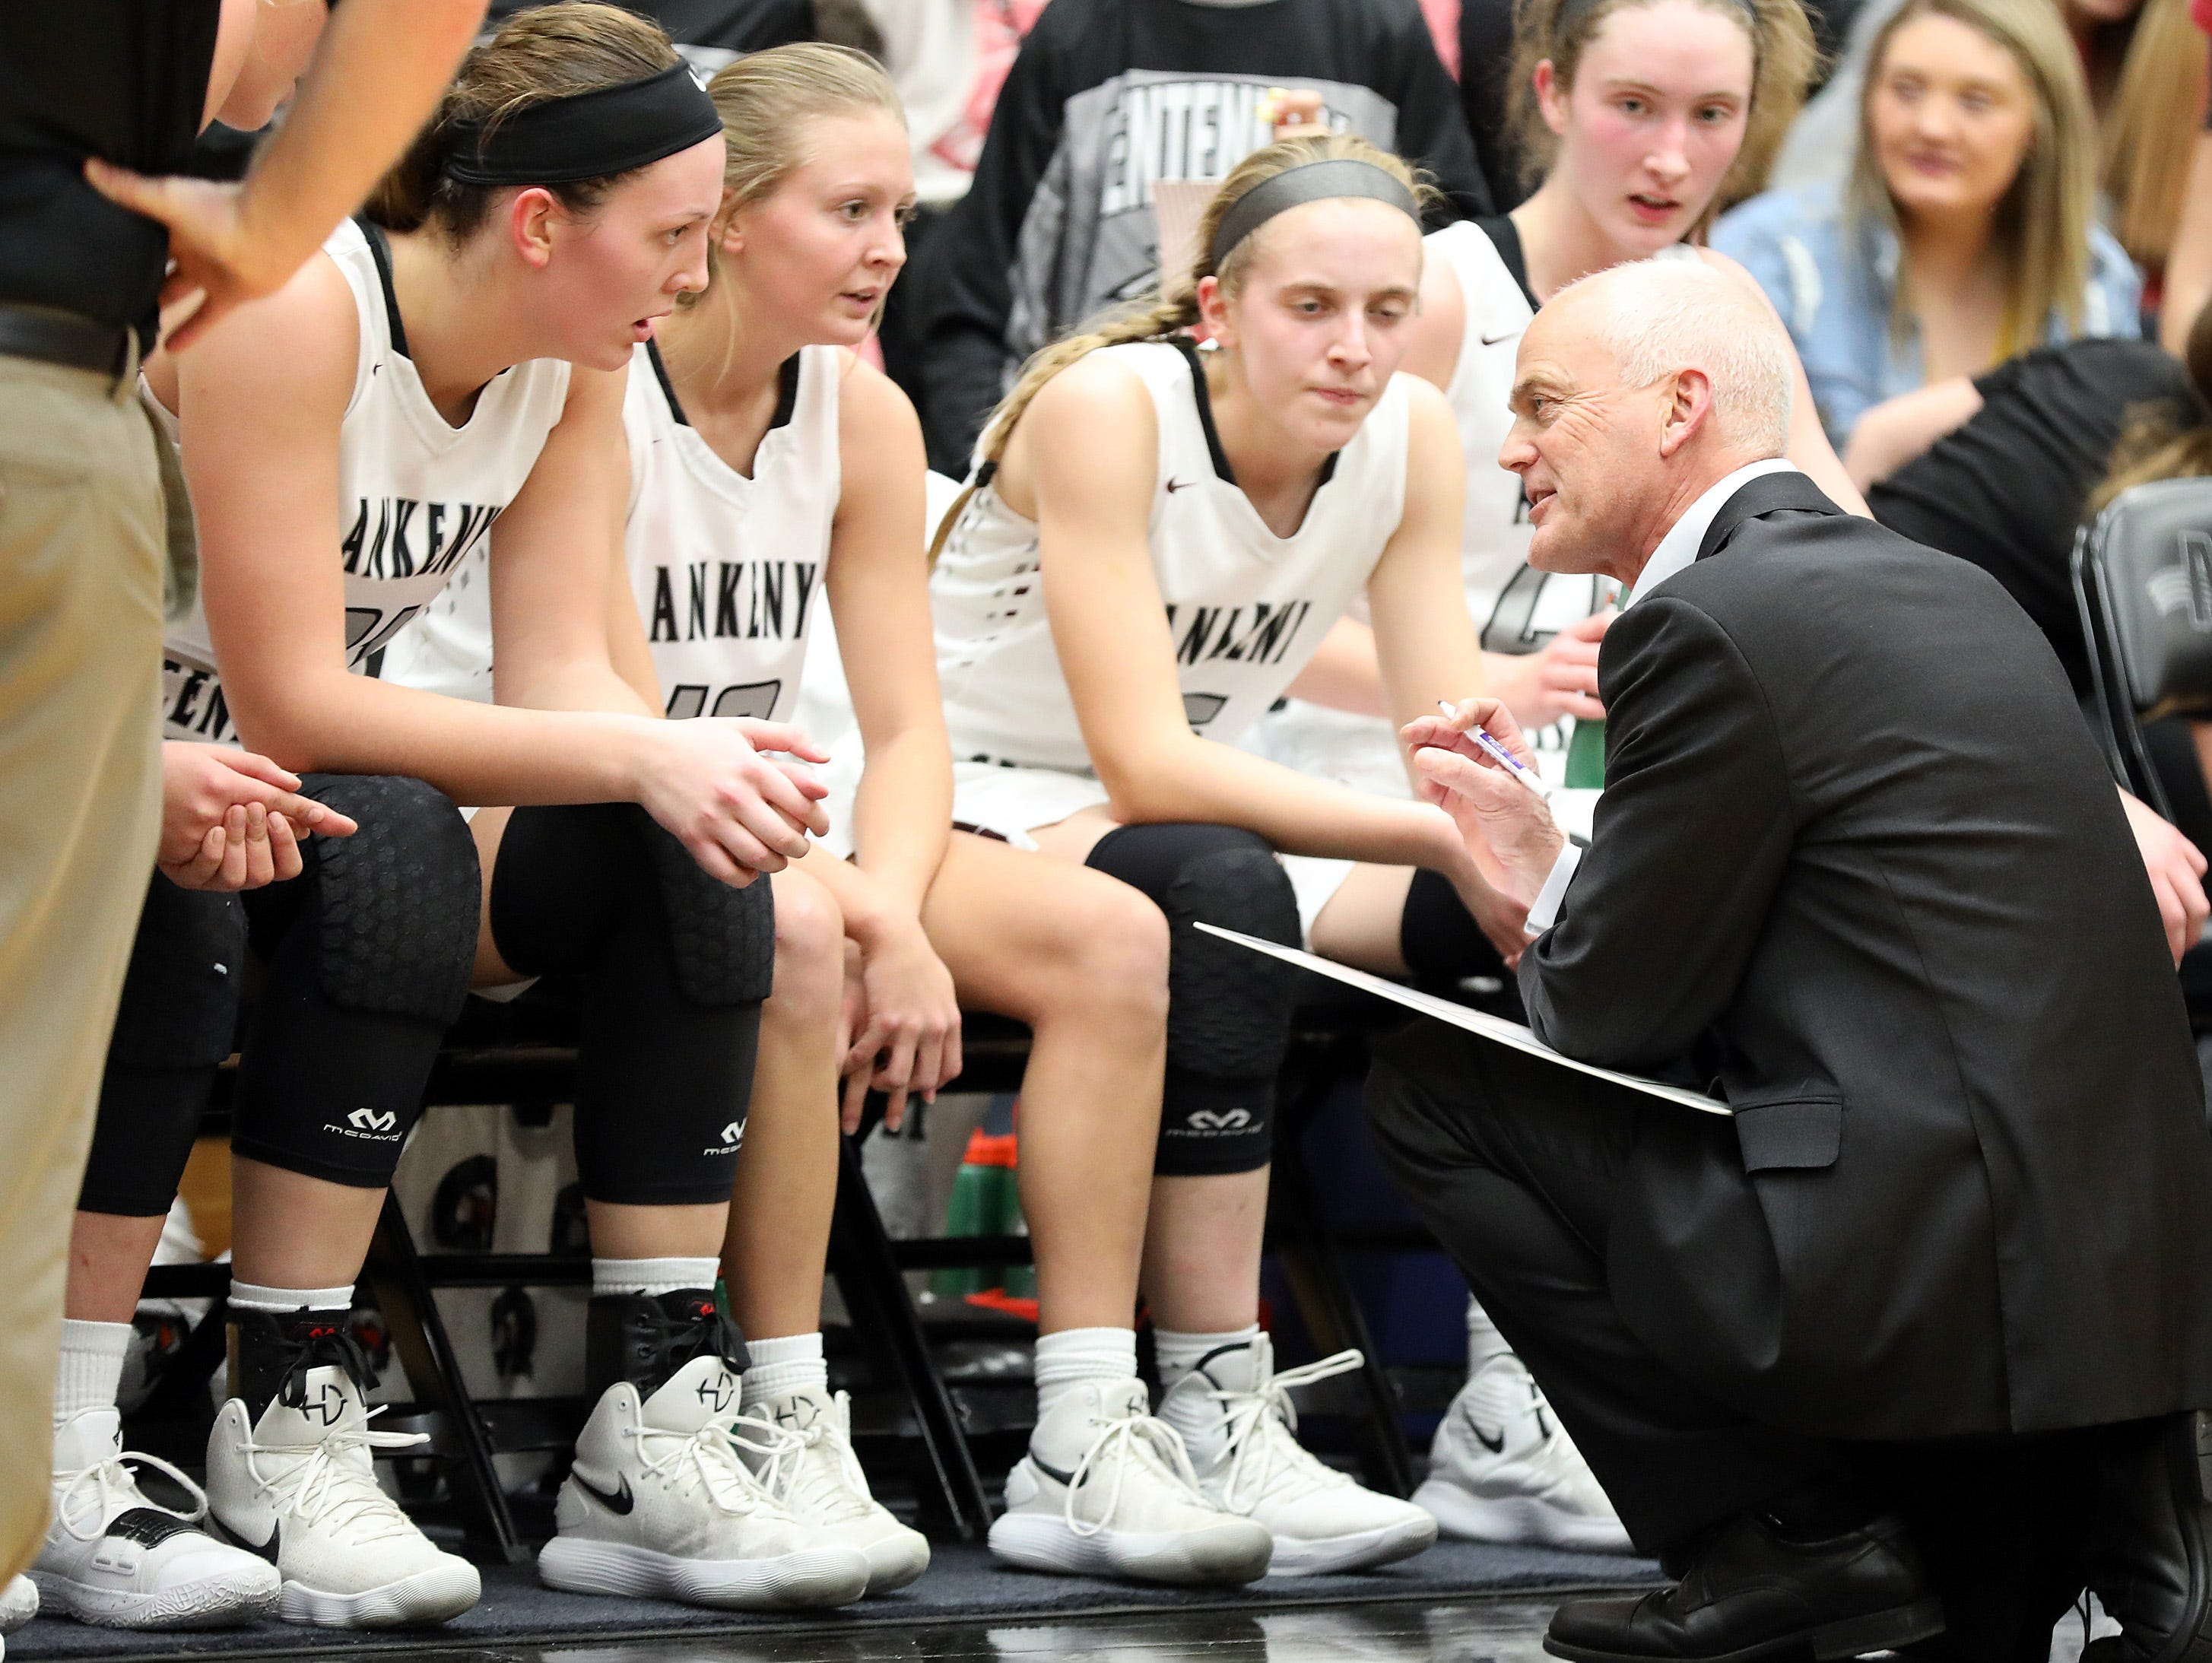 Ankeny Centennial head coach Scott DeJong provides a plan to win during a time-out as the Johnston Dragons compete against the Ankeny Centennial Jaguars in high school girls basketball on Friday, Jan. 4, 2019 at Ankeny Centennial High School.